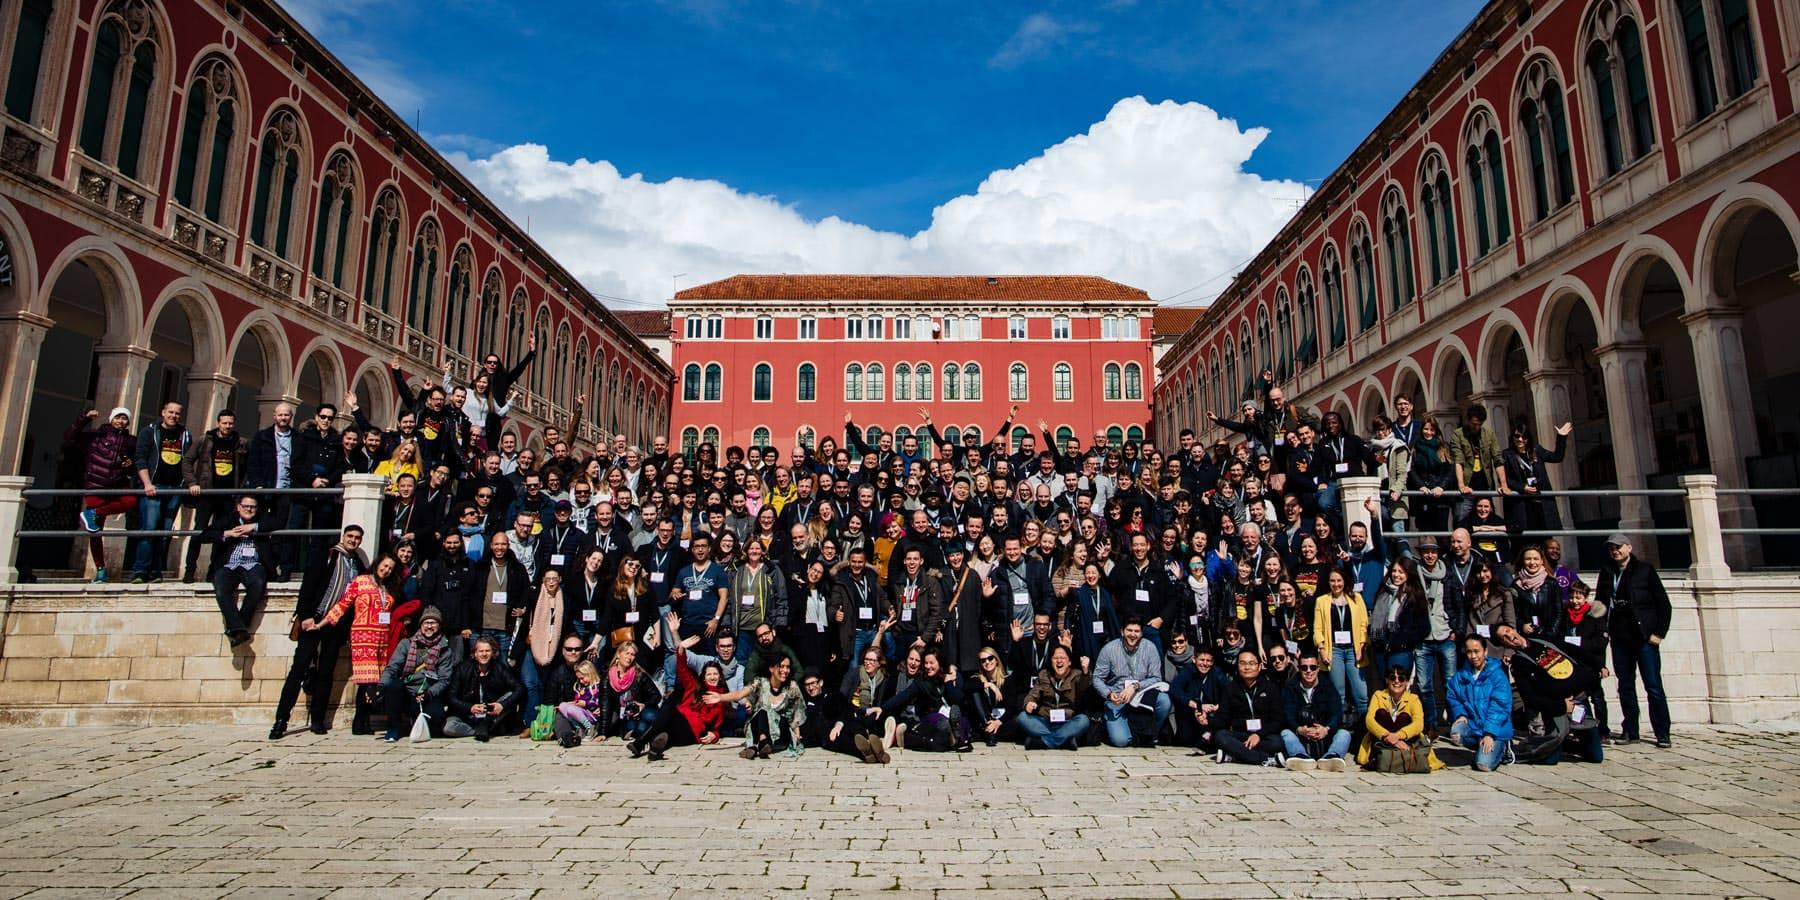 A group of attendees standing on the steps for the fearless wedding photography conference in Europe